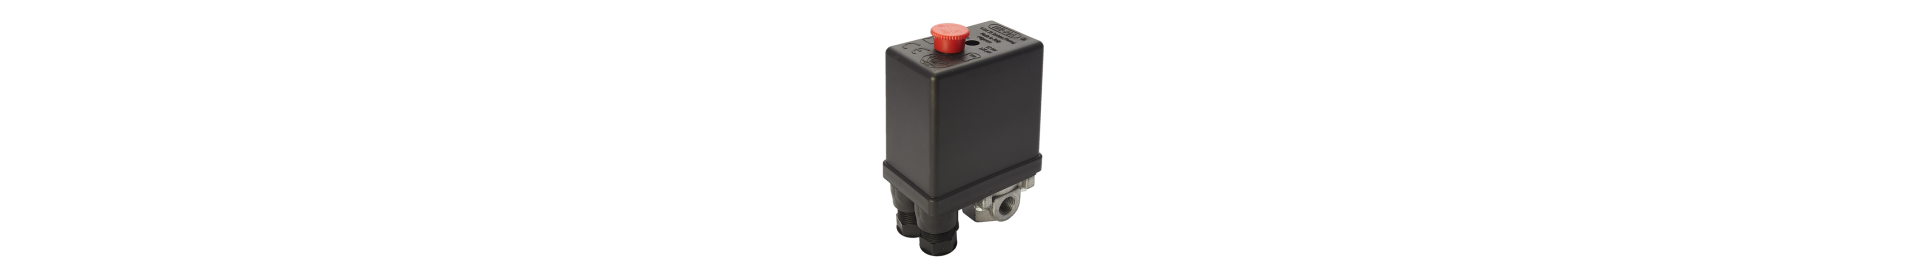 Single phase pressure switches